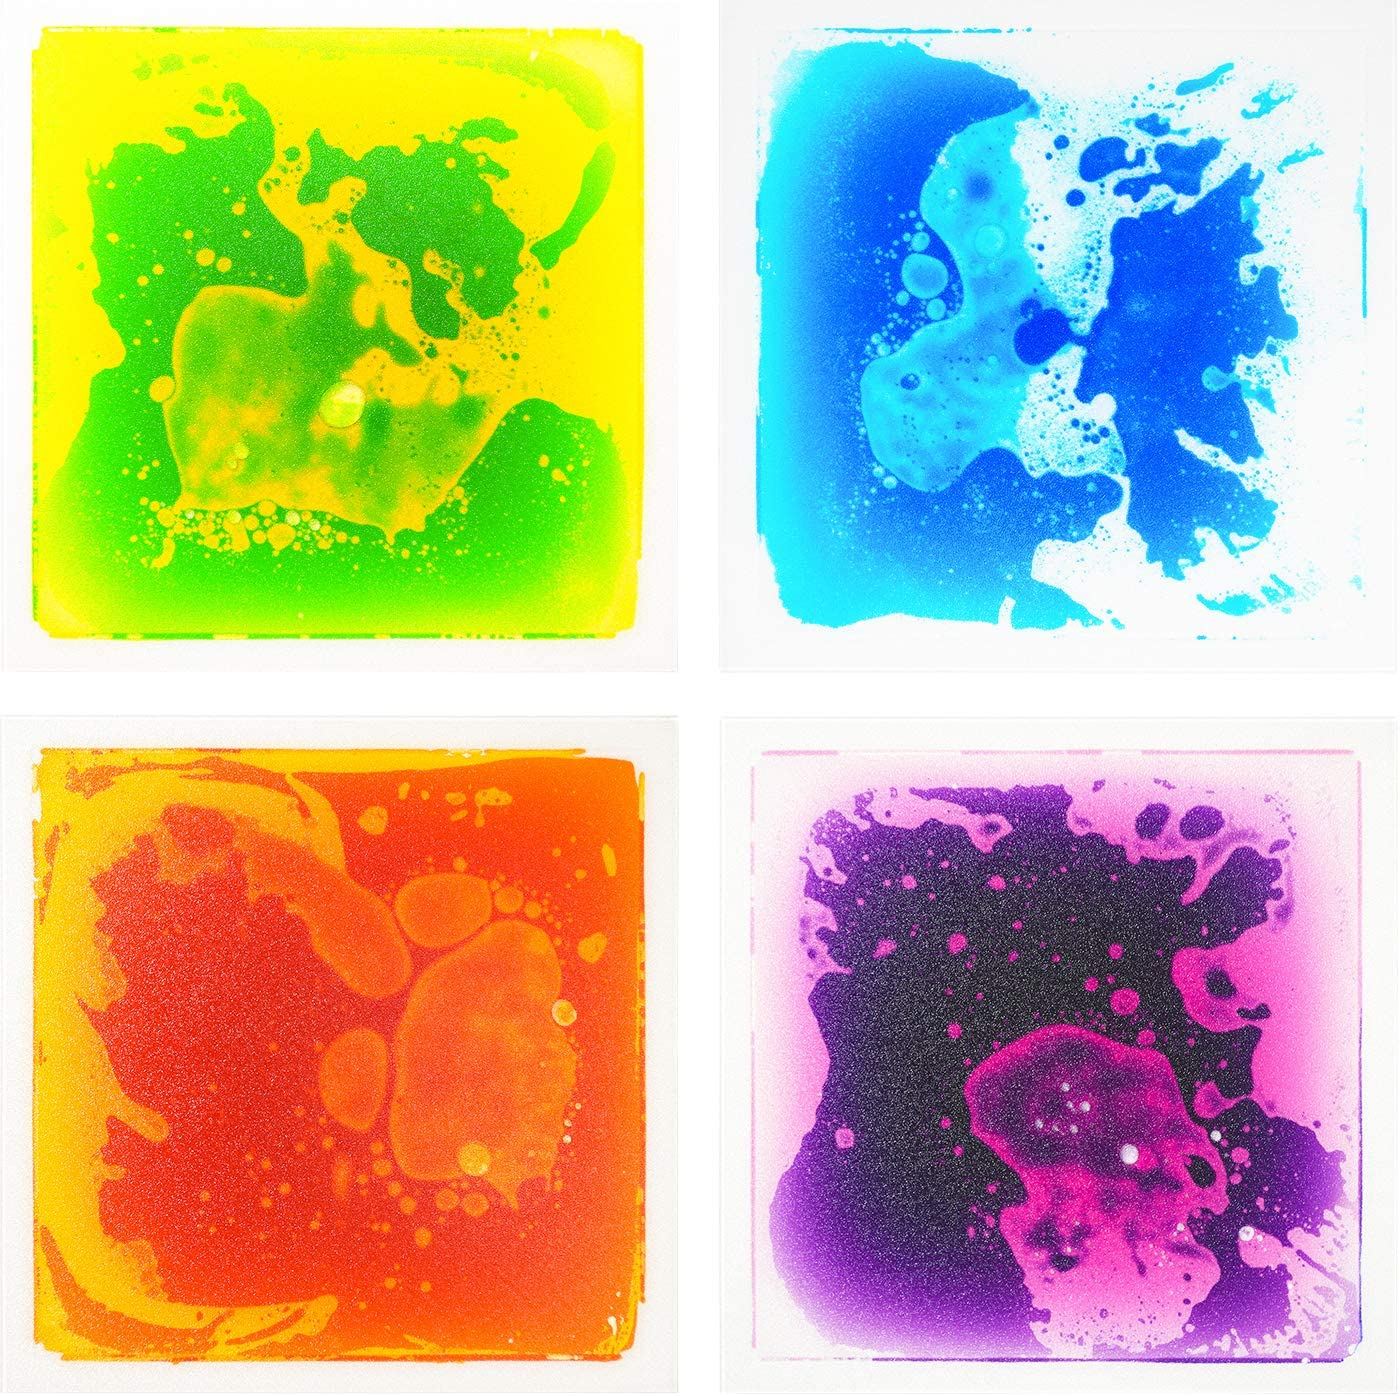 A11410 - Multi-Color Exercise Mat Liquid Encased Fancy Playmat Kids Play Floor Tile, Set of 4